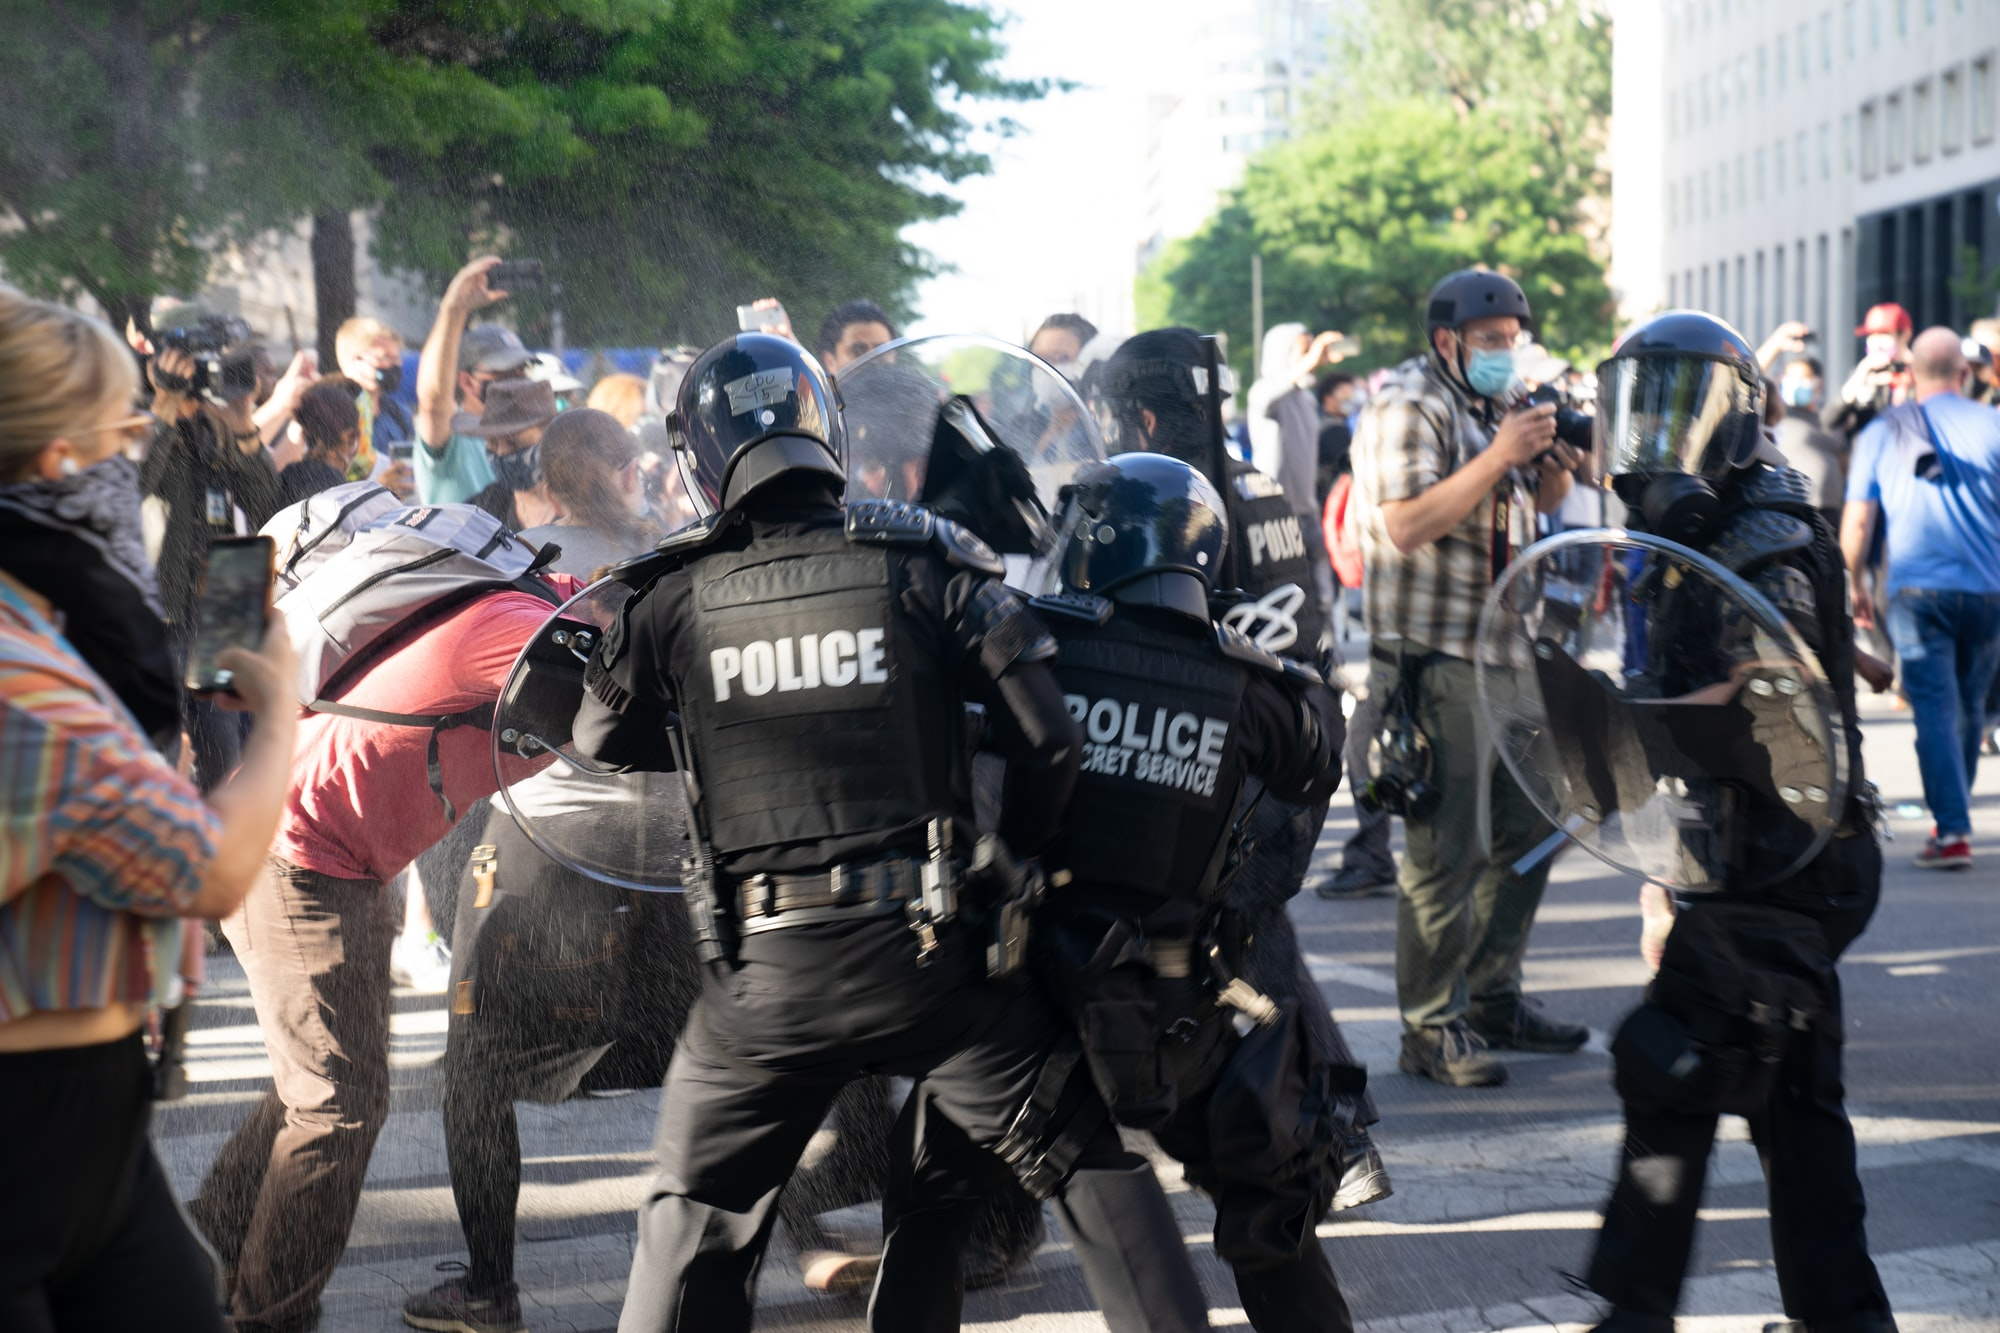 Riot police attacking peaceful protesters wearing masks